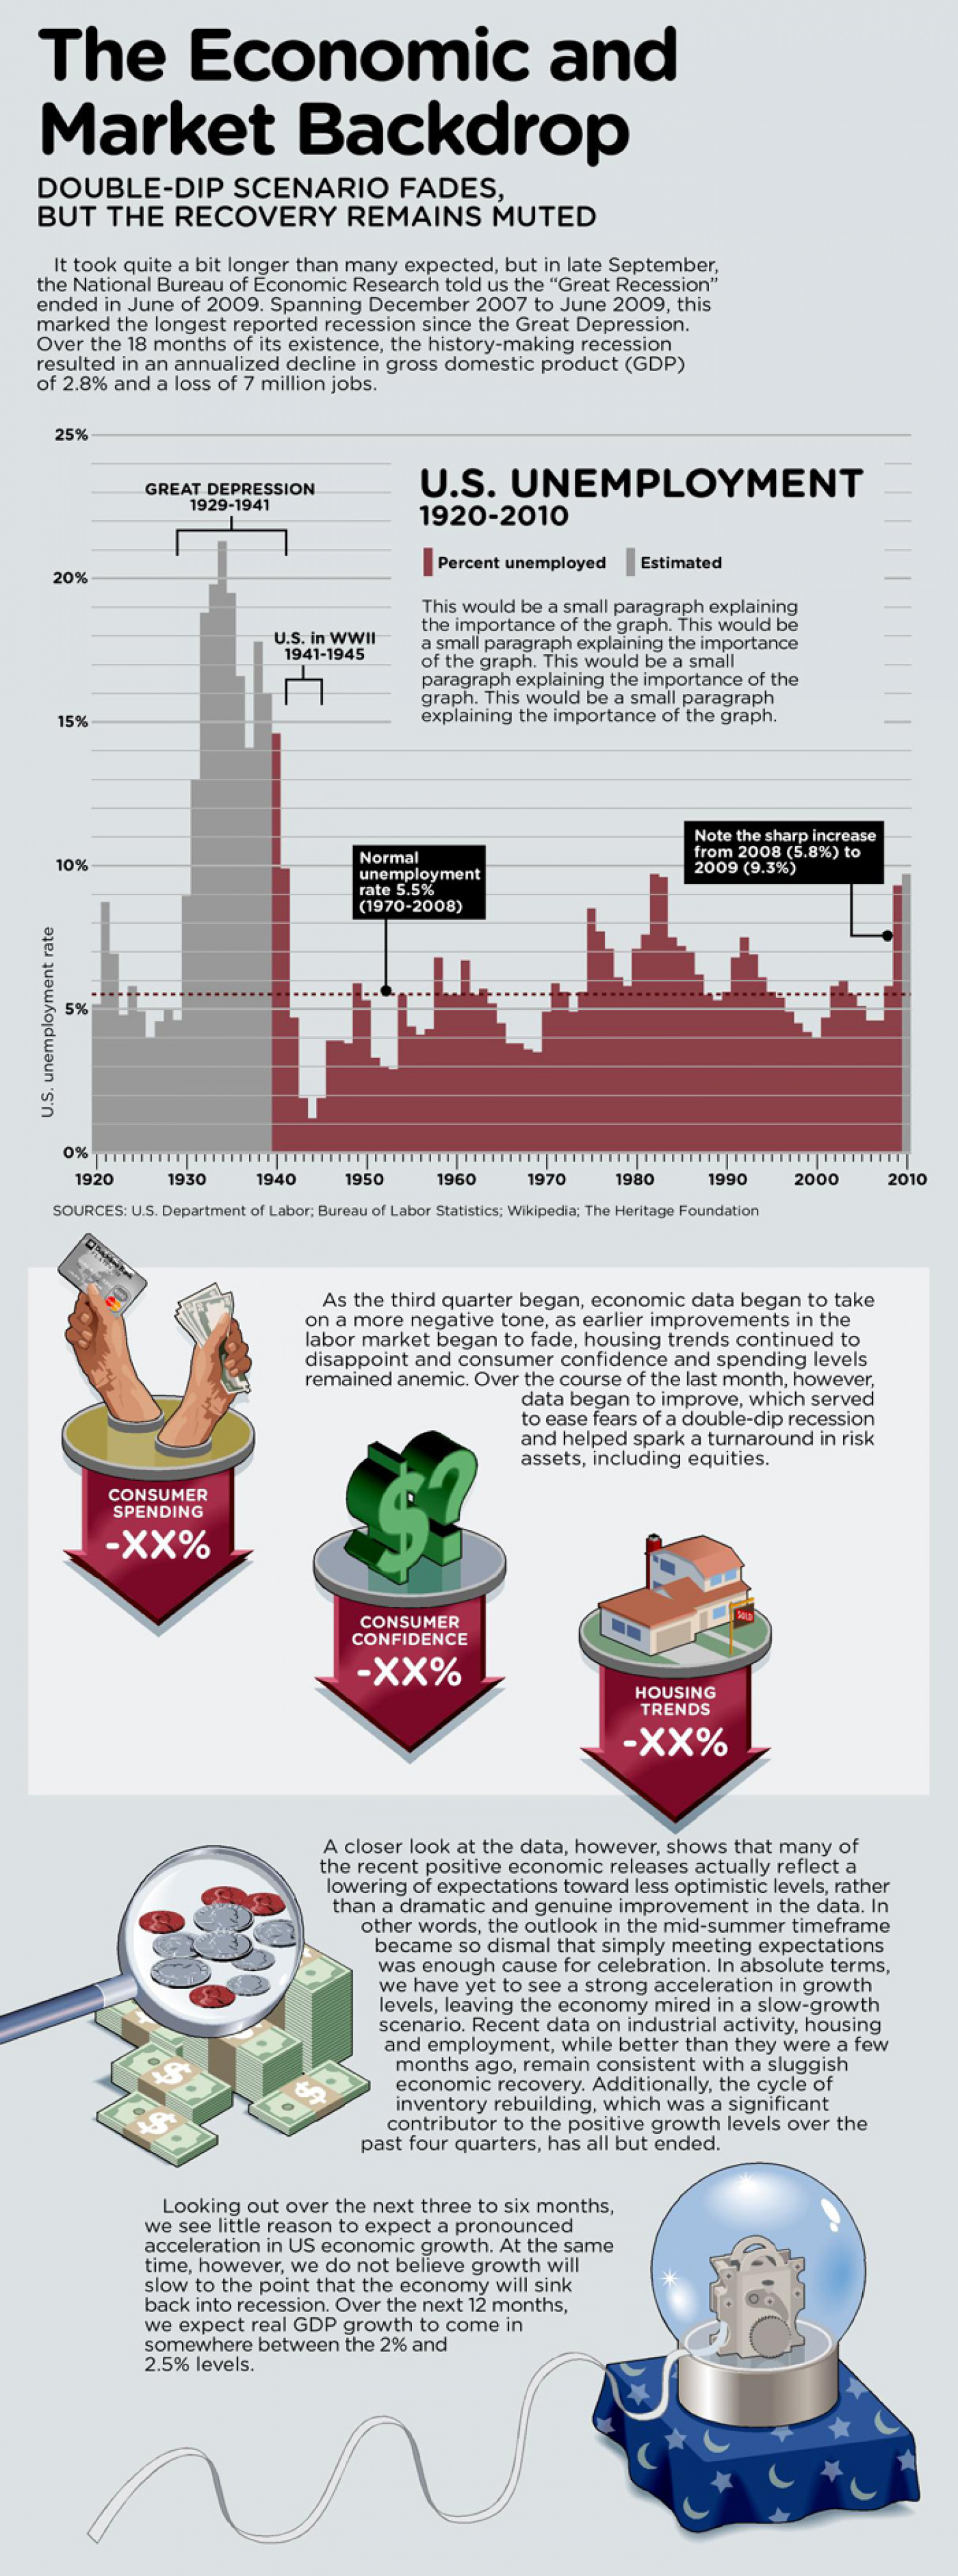 The Economic and Market Backdrop Infographic